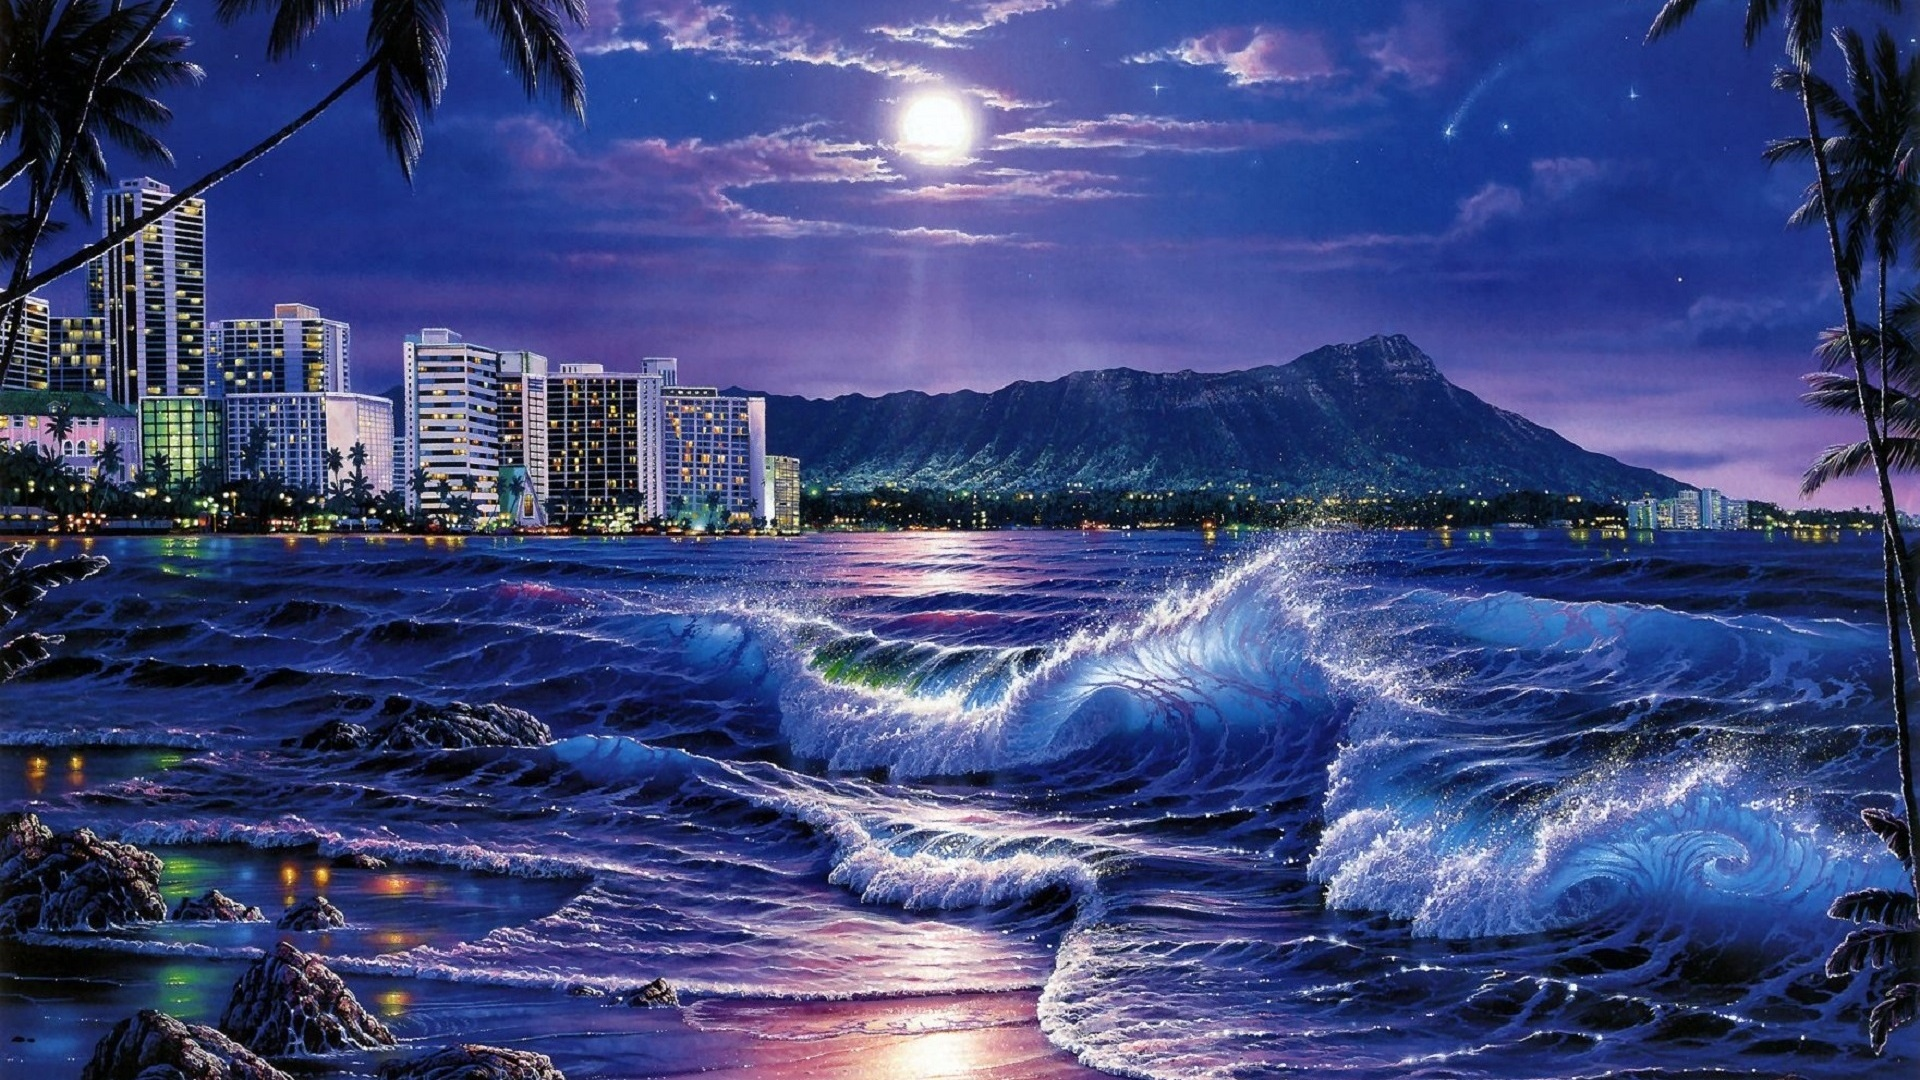 1920x1080 Hd Wallpapers For Your Desktop: 1920x1080 Ocean City Moon Night Hawaii Desktop PC And Mac